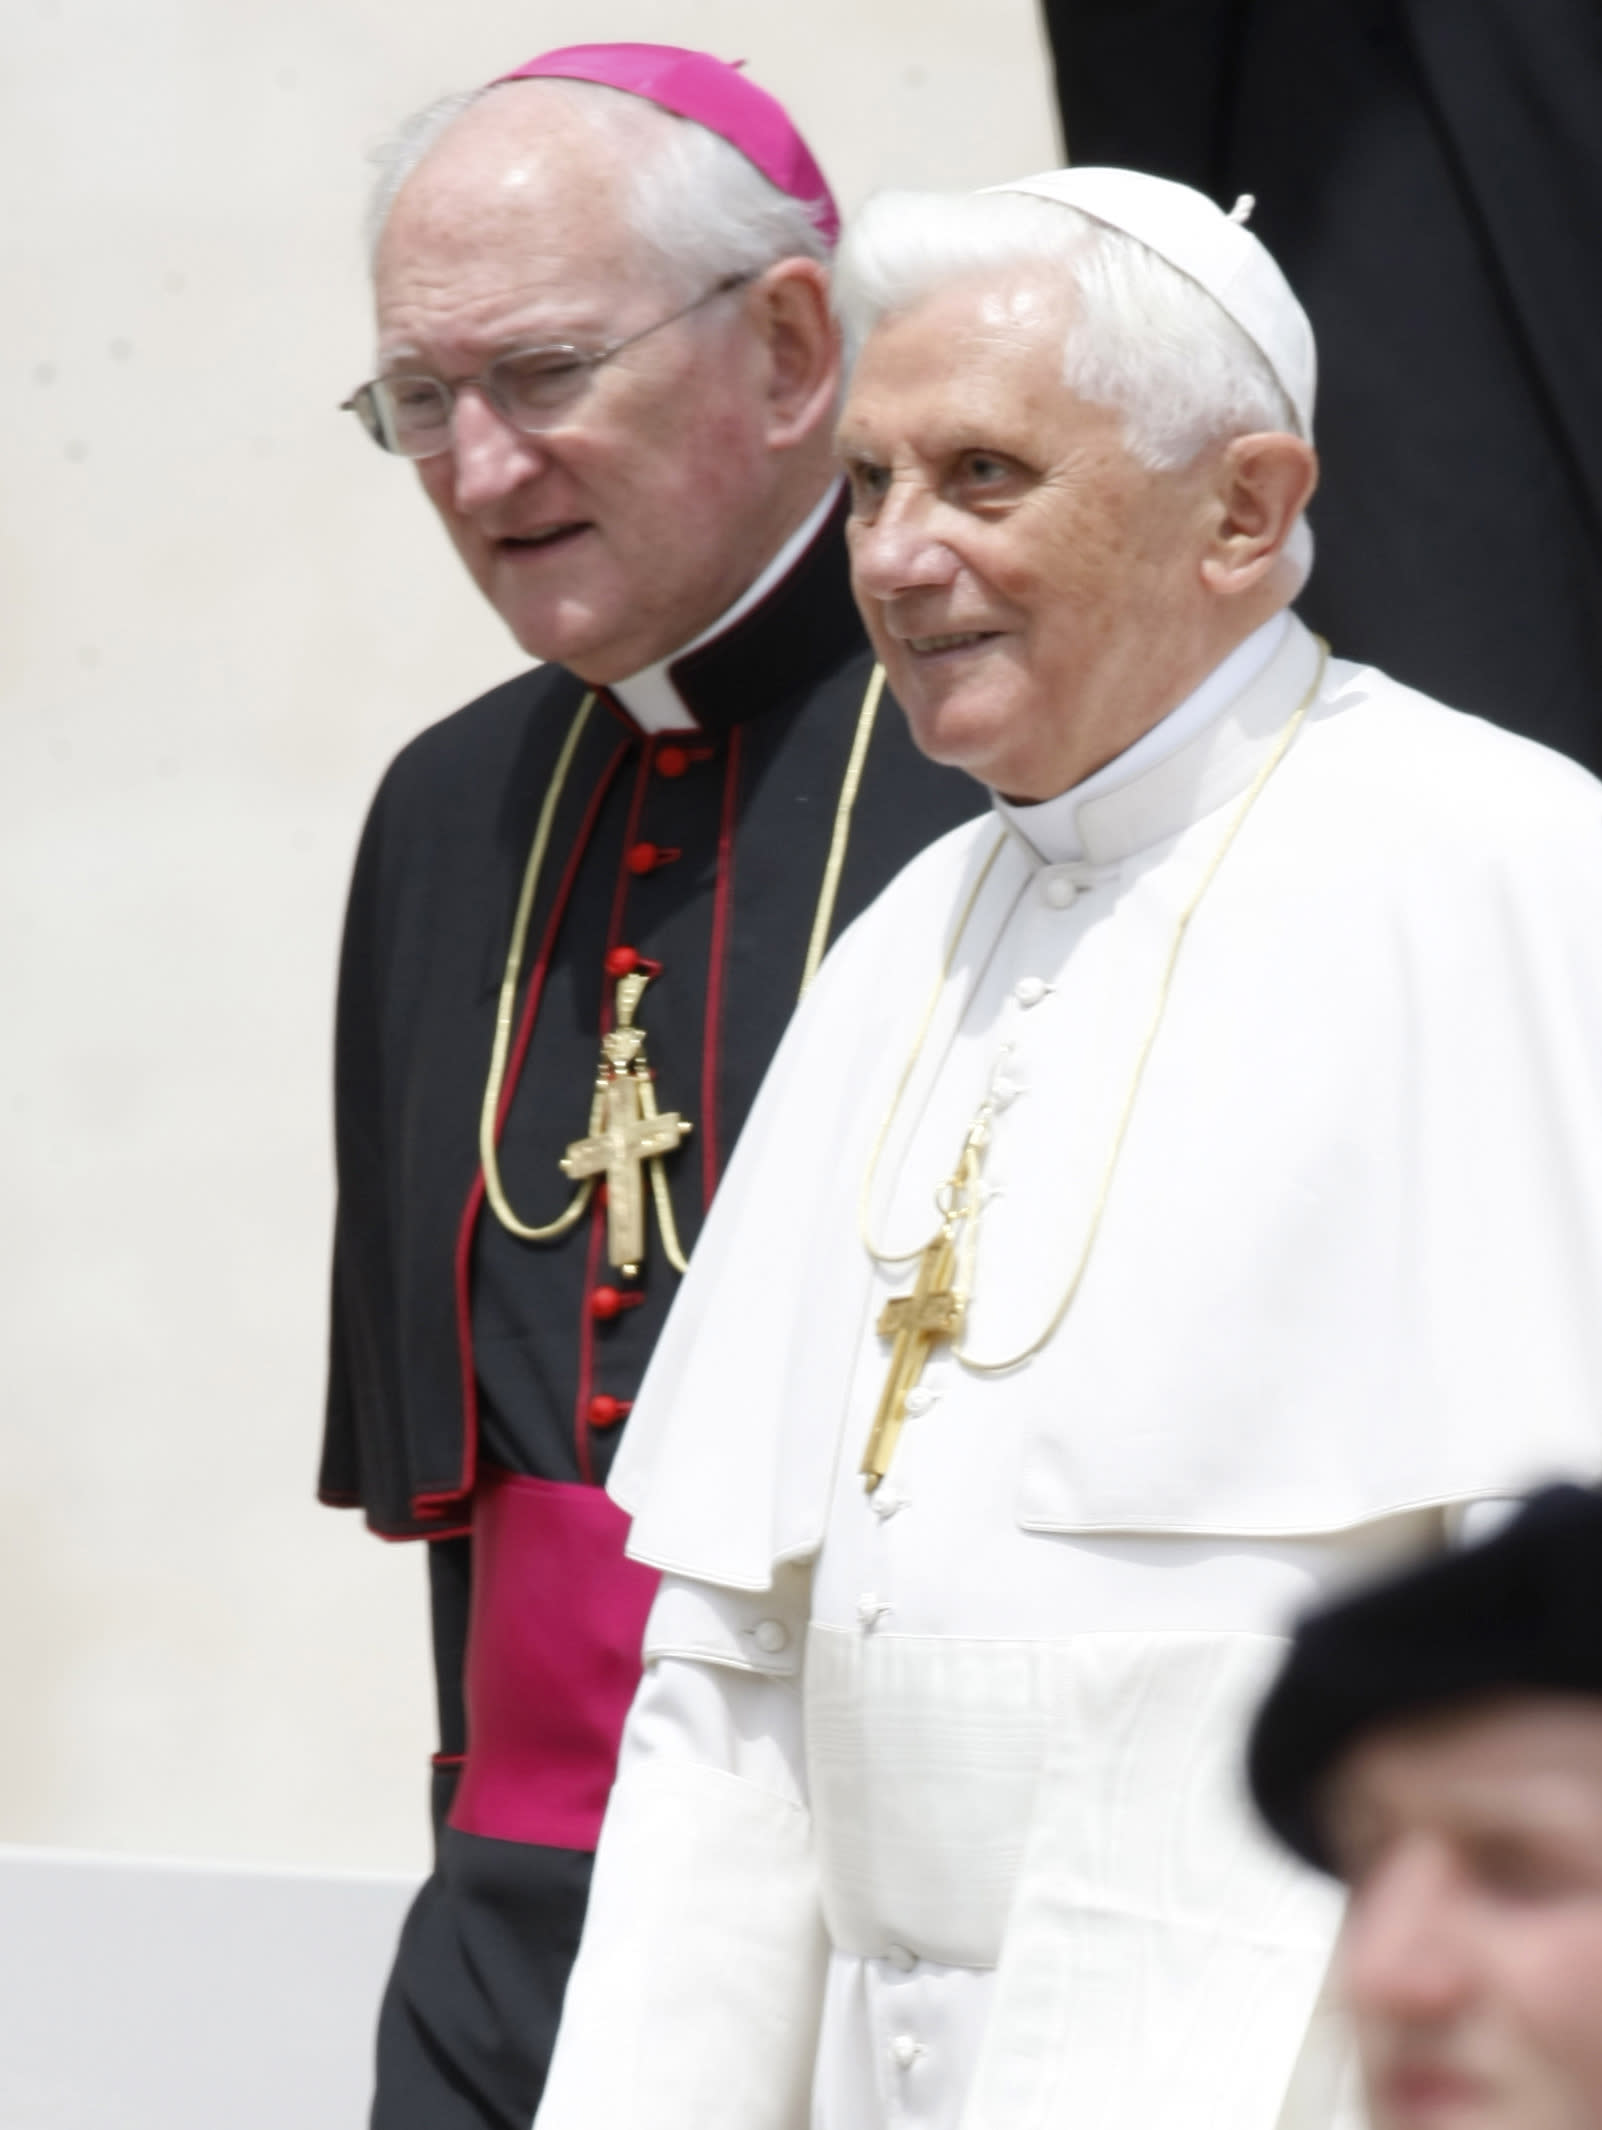 FILE - This May 6, 2009 file photo shows Pope Benedict XVI, right, walking with Mons. James Harvey, of the US, prefect of the Papal Household, during the pontiff's weekly general audience, in St. Peter's Square, at the Vatican. Harvey is one of the six new cardinals named by Pope Benedict XVI on Wednesday, Oct. 24, 2012 that will be elevated at a consistory Nov. 24 at the Vatican. (AP Photo/Andrew Medichini)